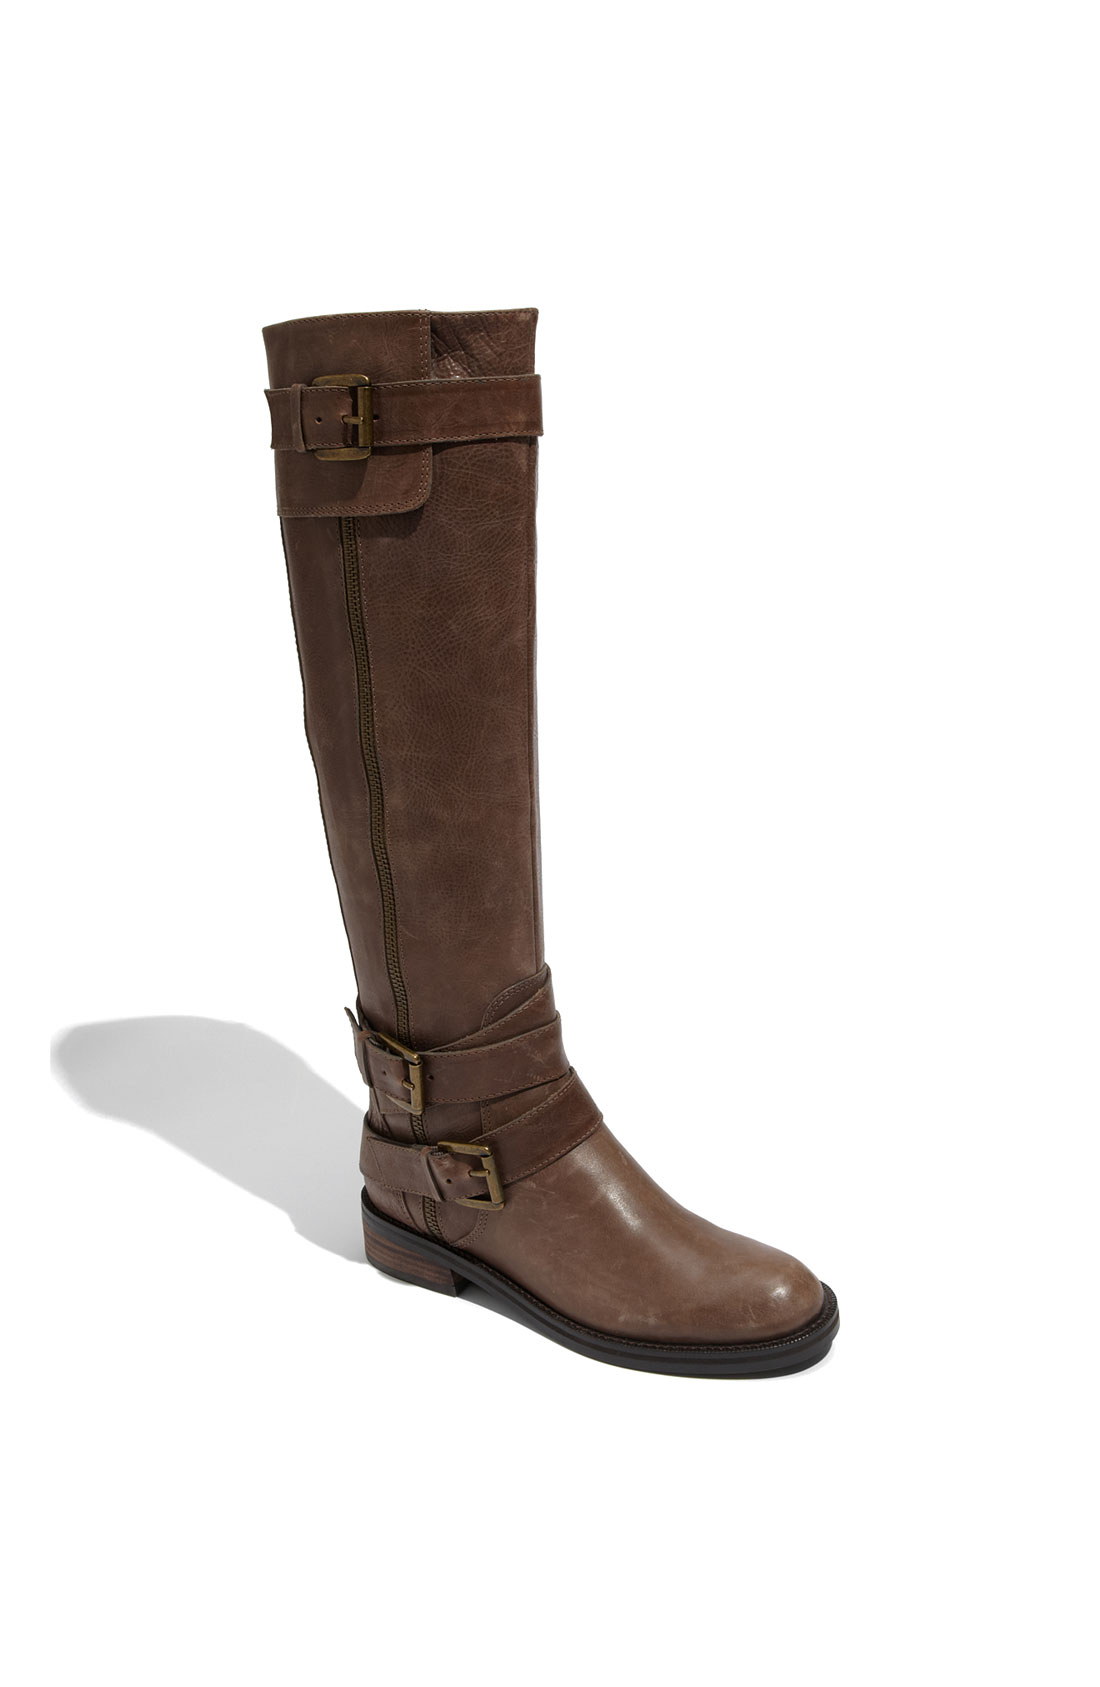 enzo angiolini saylem boot in brown taupe leather